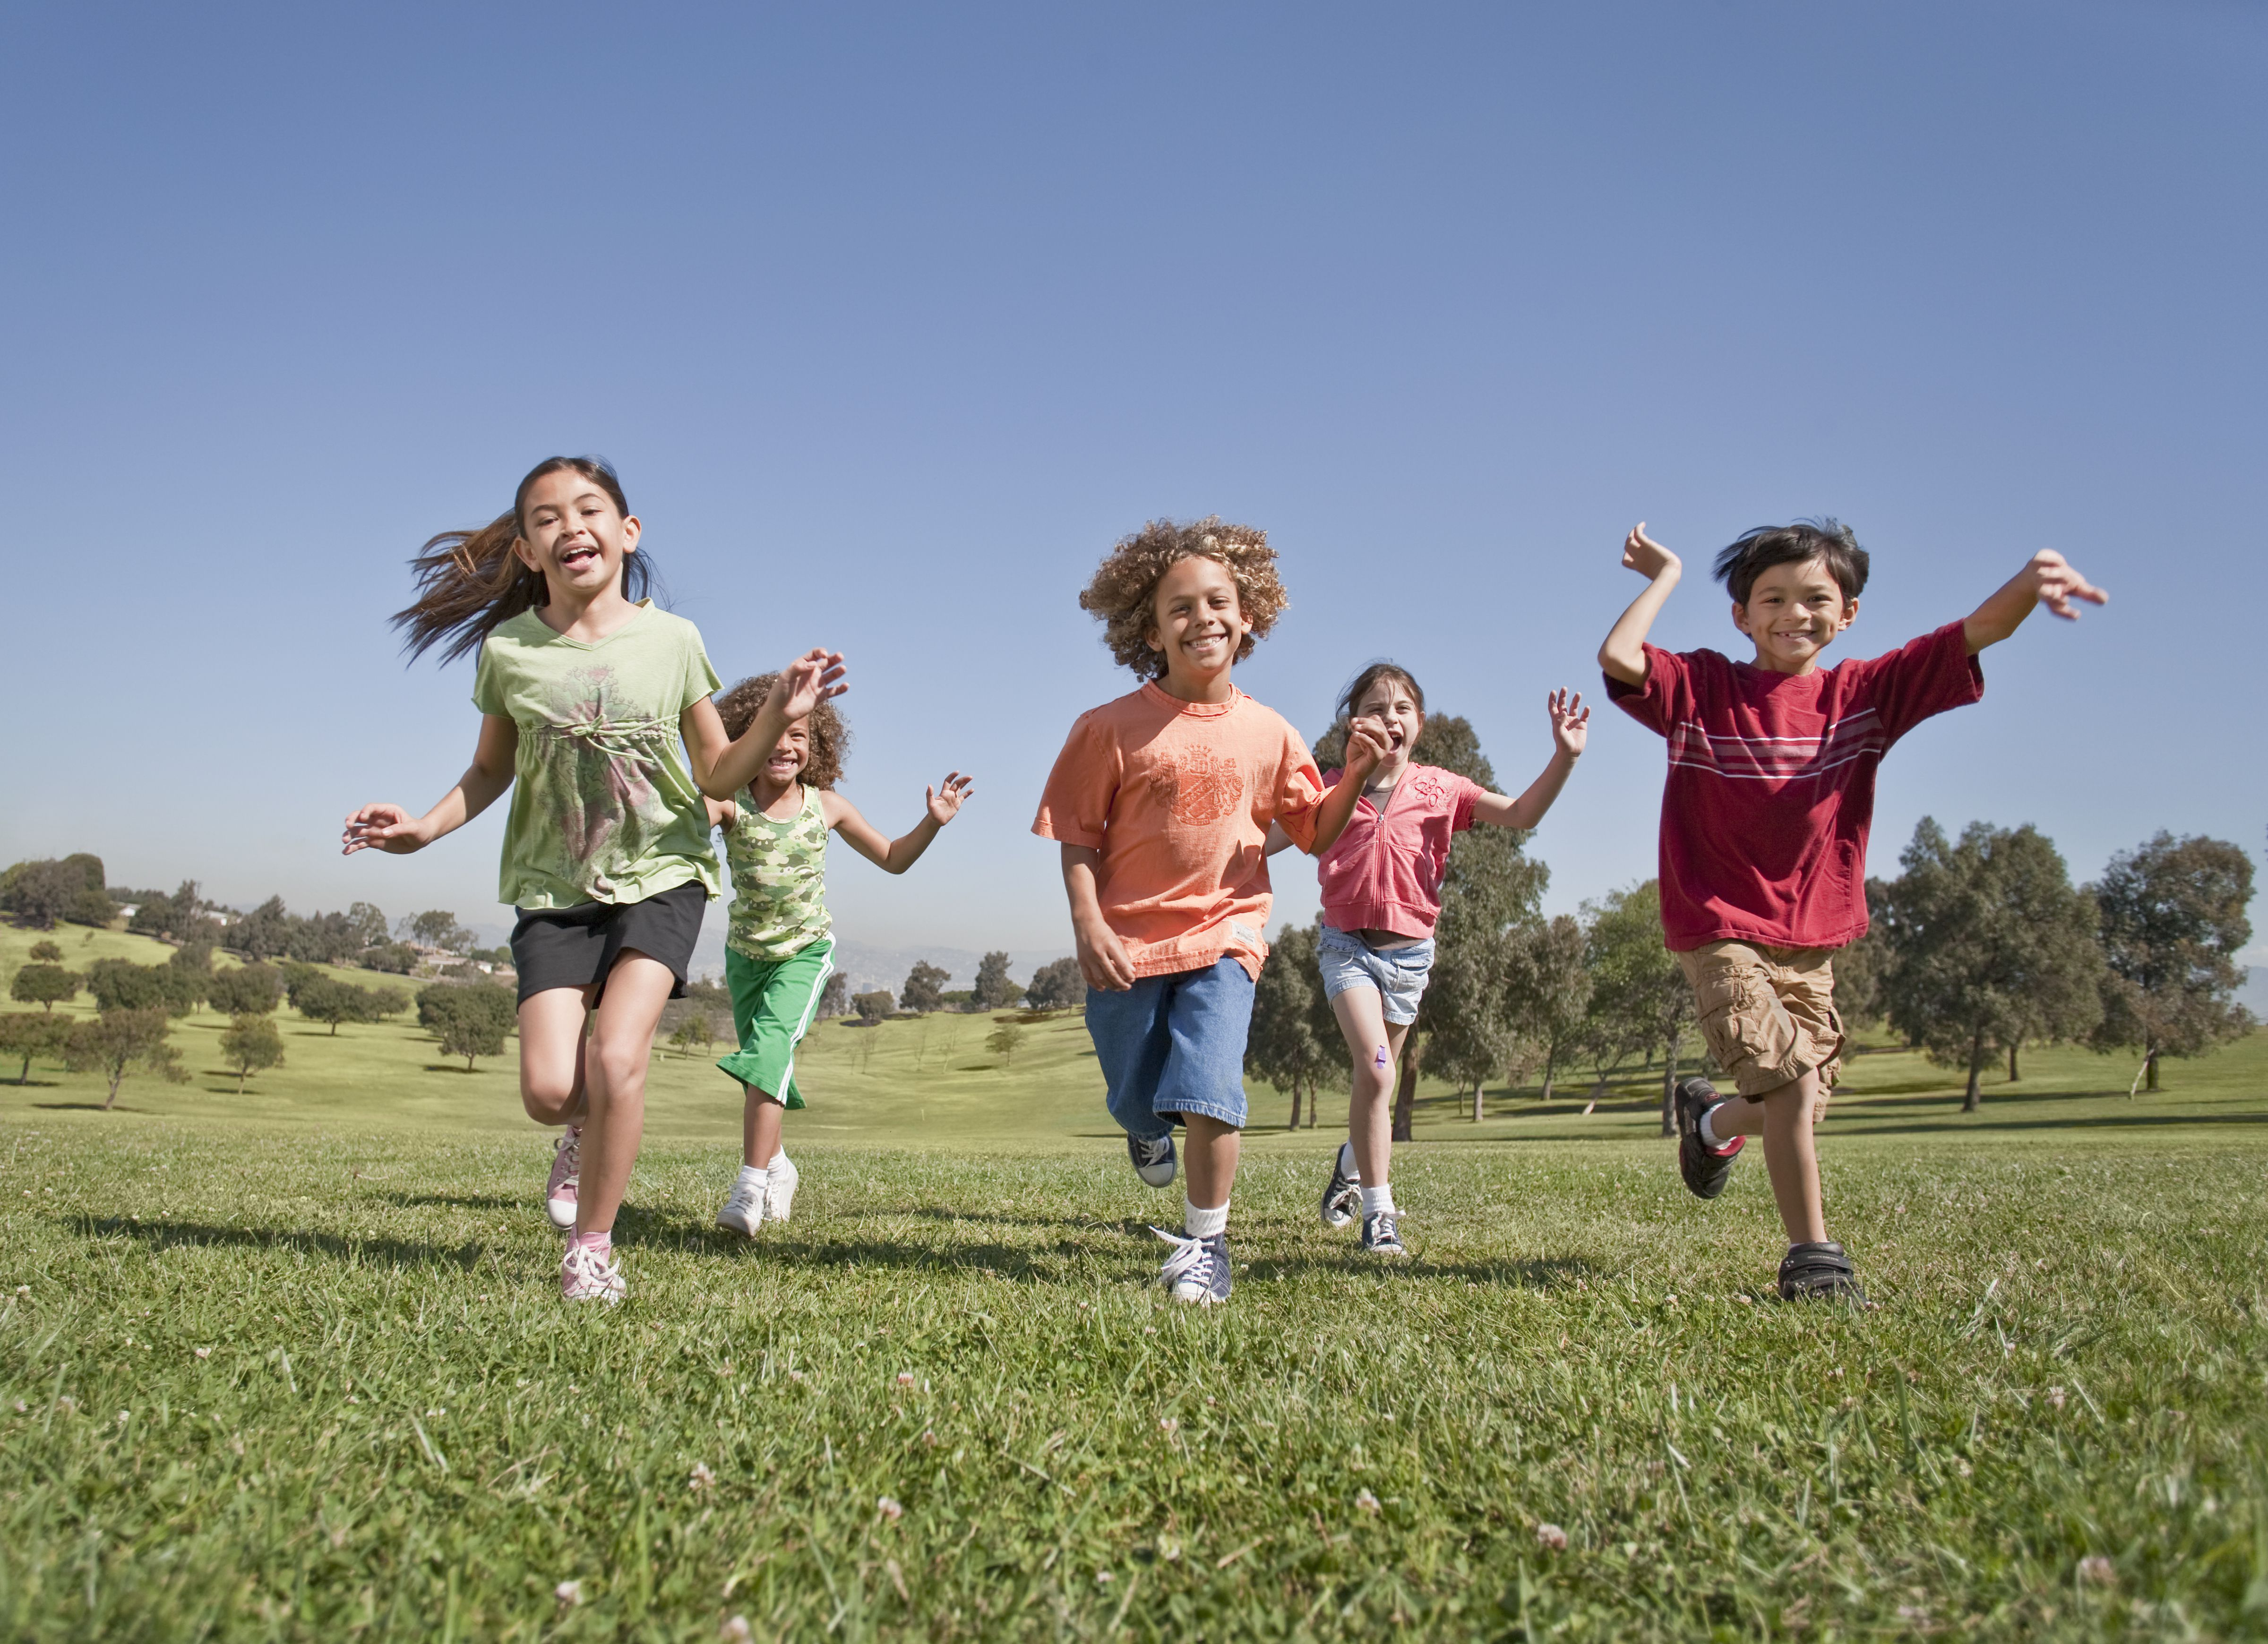 Outdoorioutdoorimg Tag: Running Games For Kids To Encourage Exercise